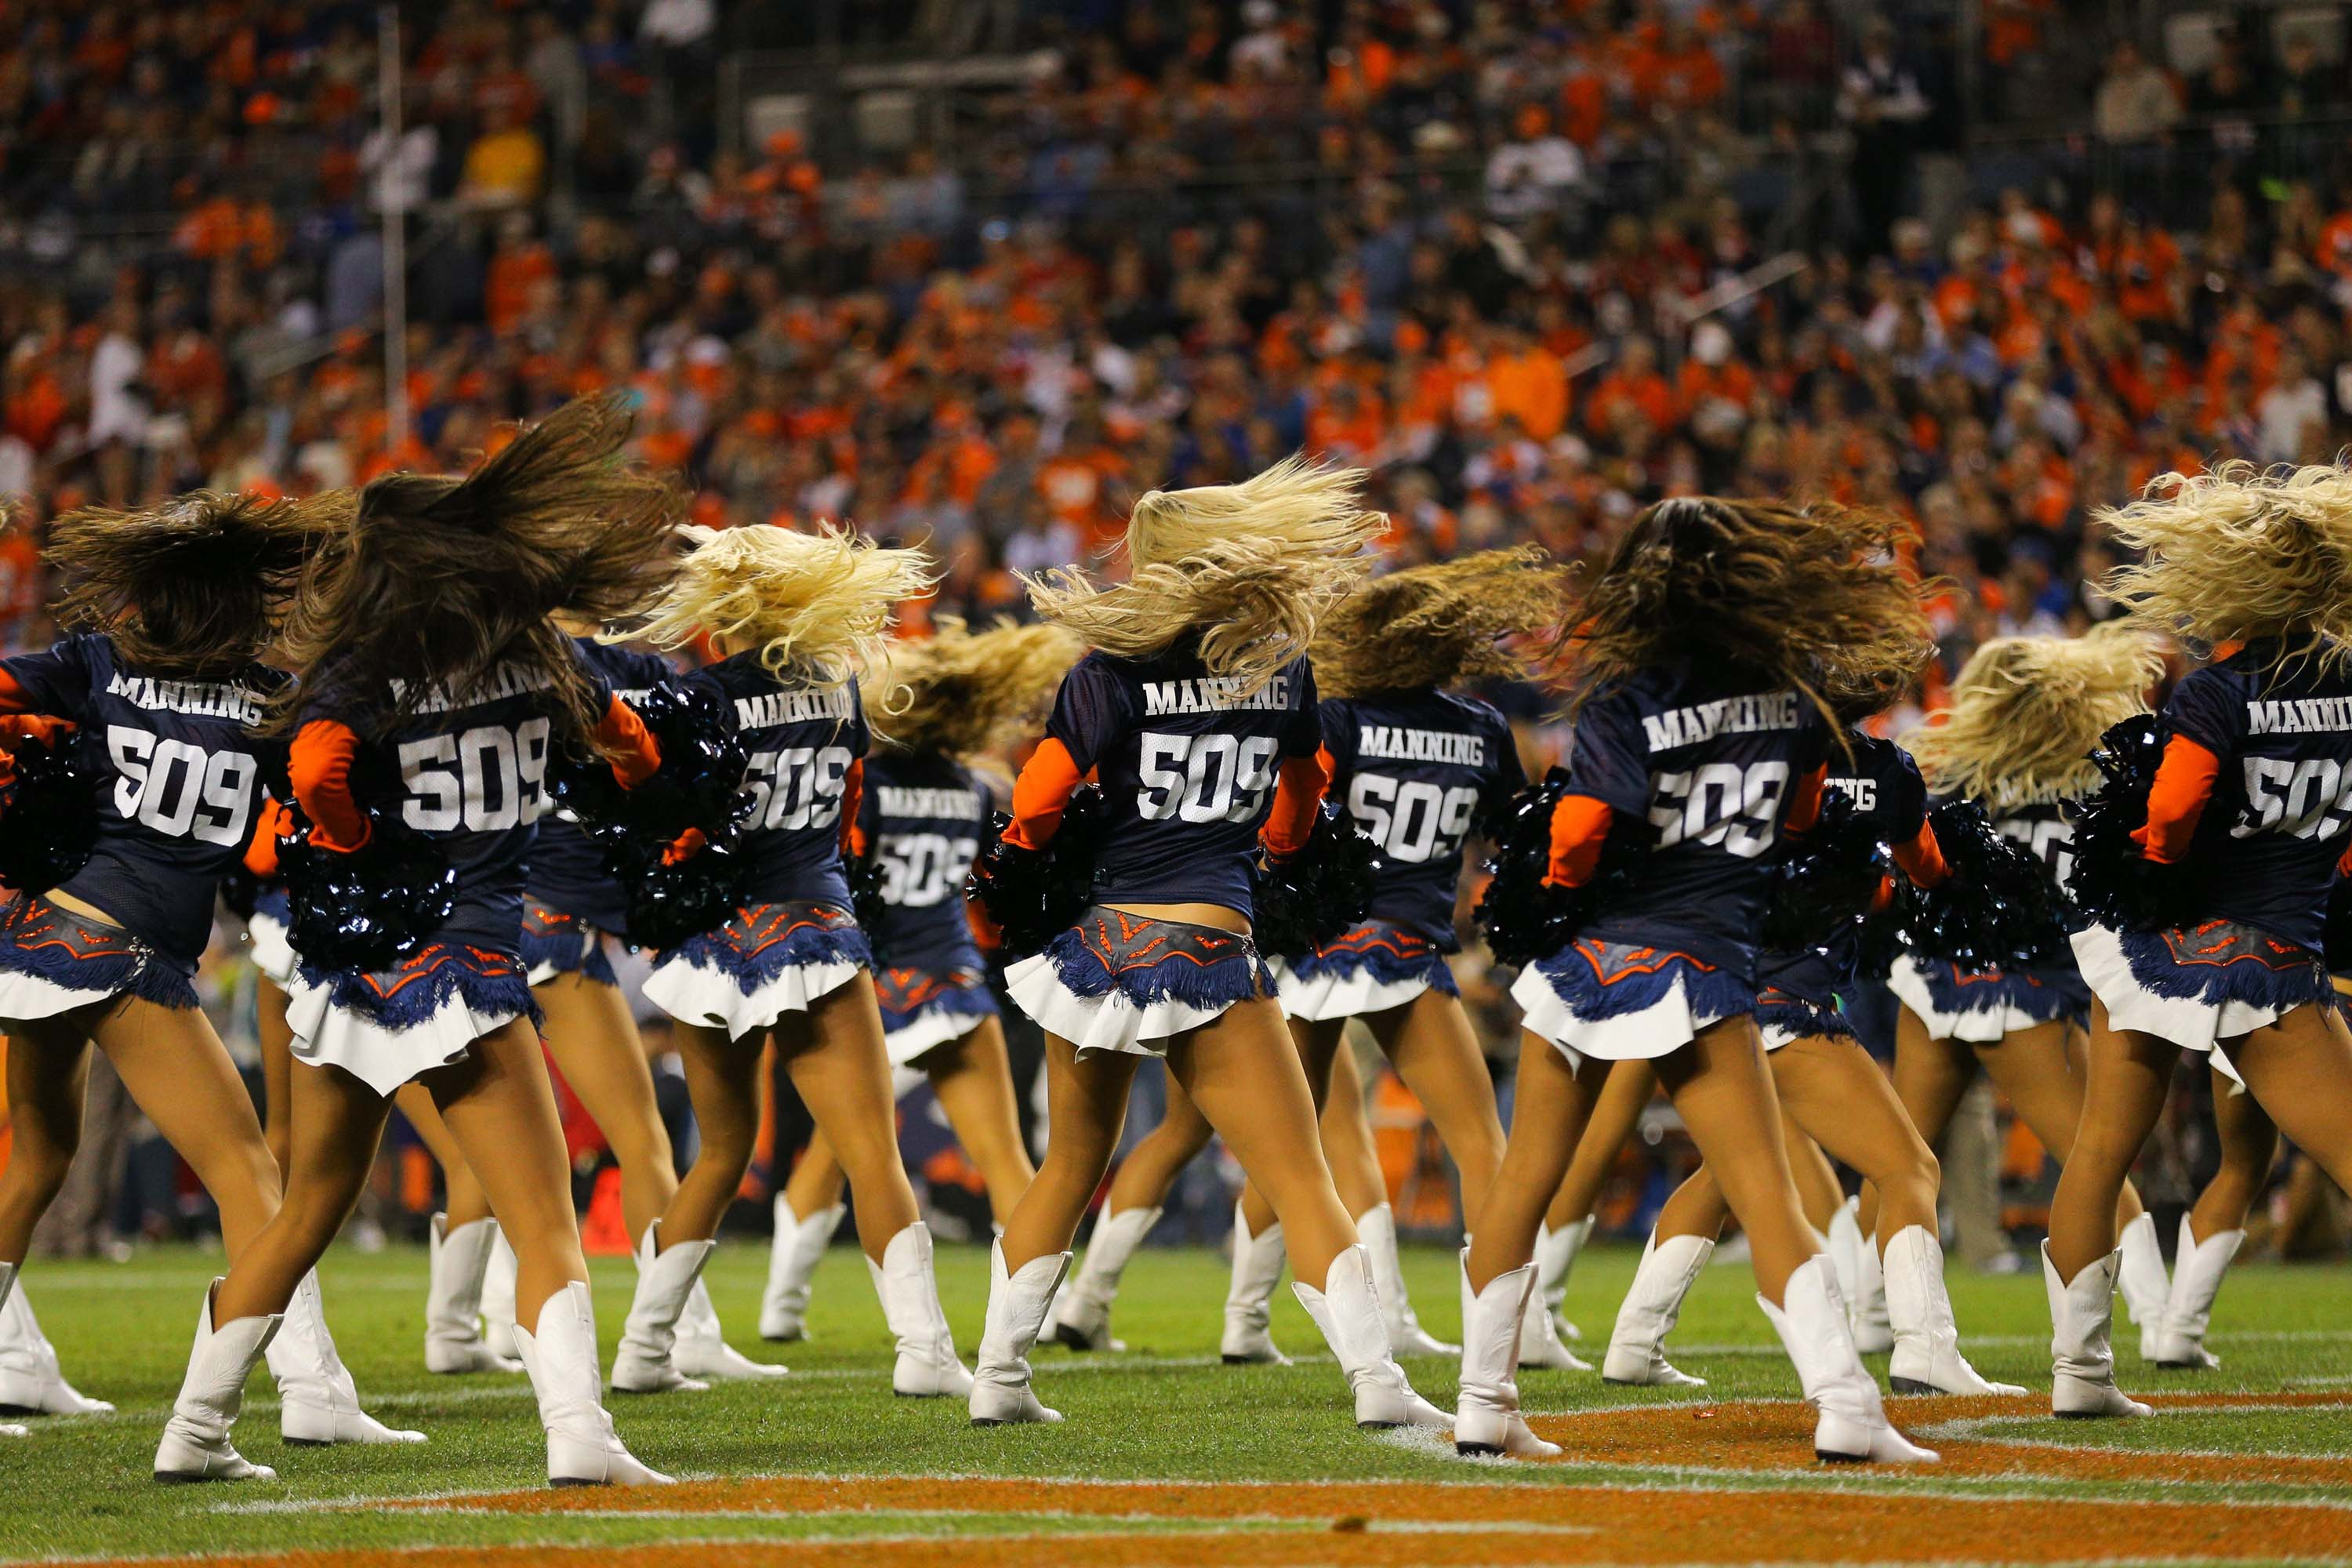 Denver Broncos cheerleaders perform wearing  509  jerseys celebrating quarterback Peyton Manning's record setting 509th career touchdown pass during a game between the Denver Broncos and the San Francisco 49ers at Sports Authority Field at Mile High on Oct. 19, 2014 in Denver.